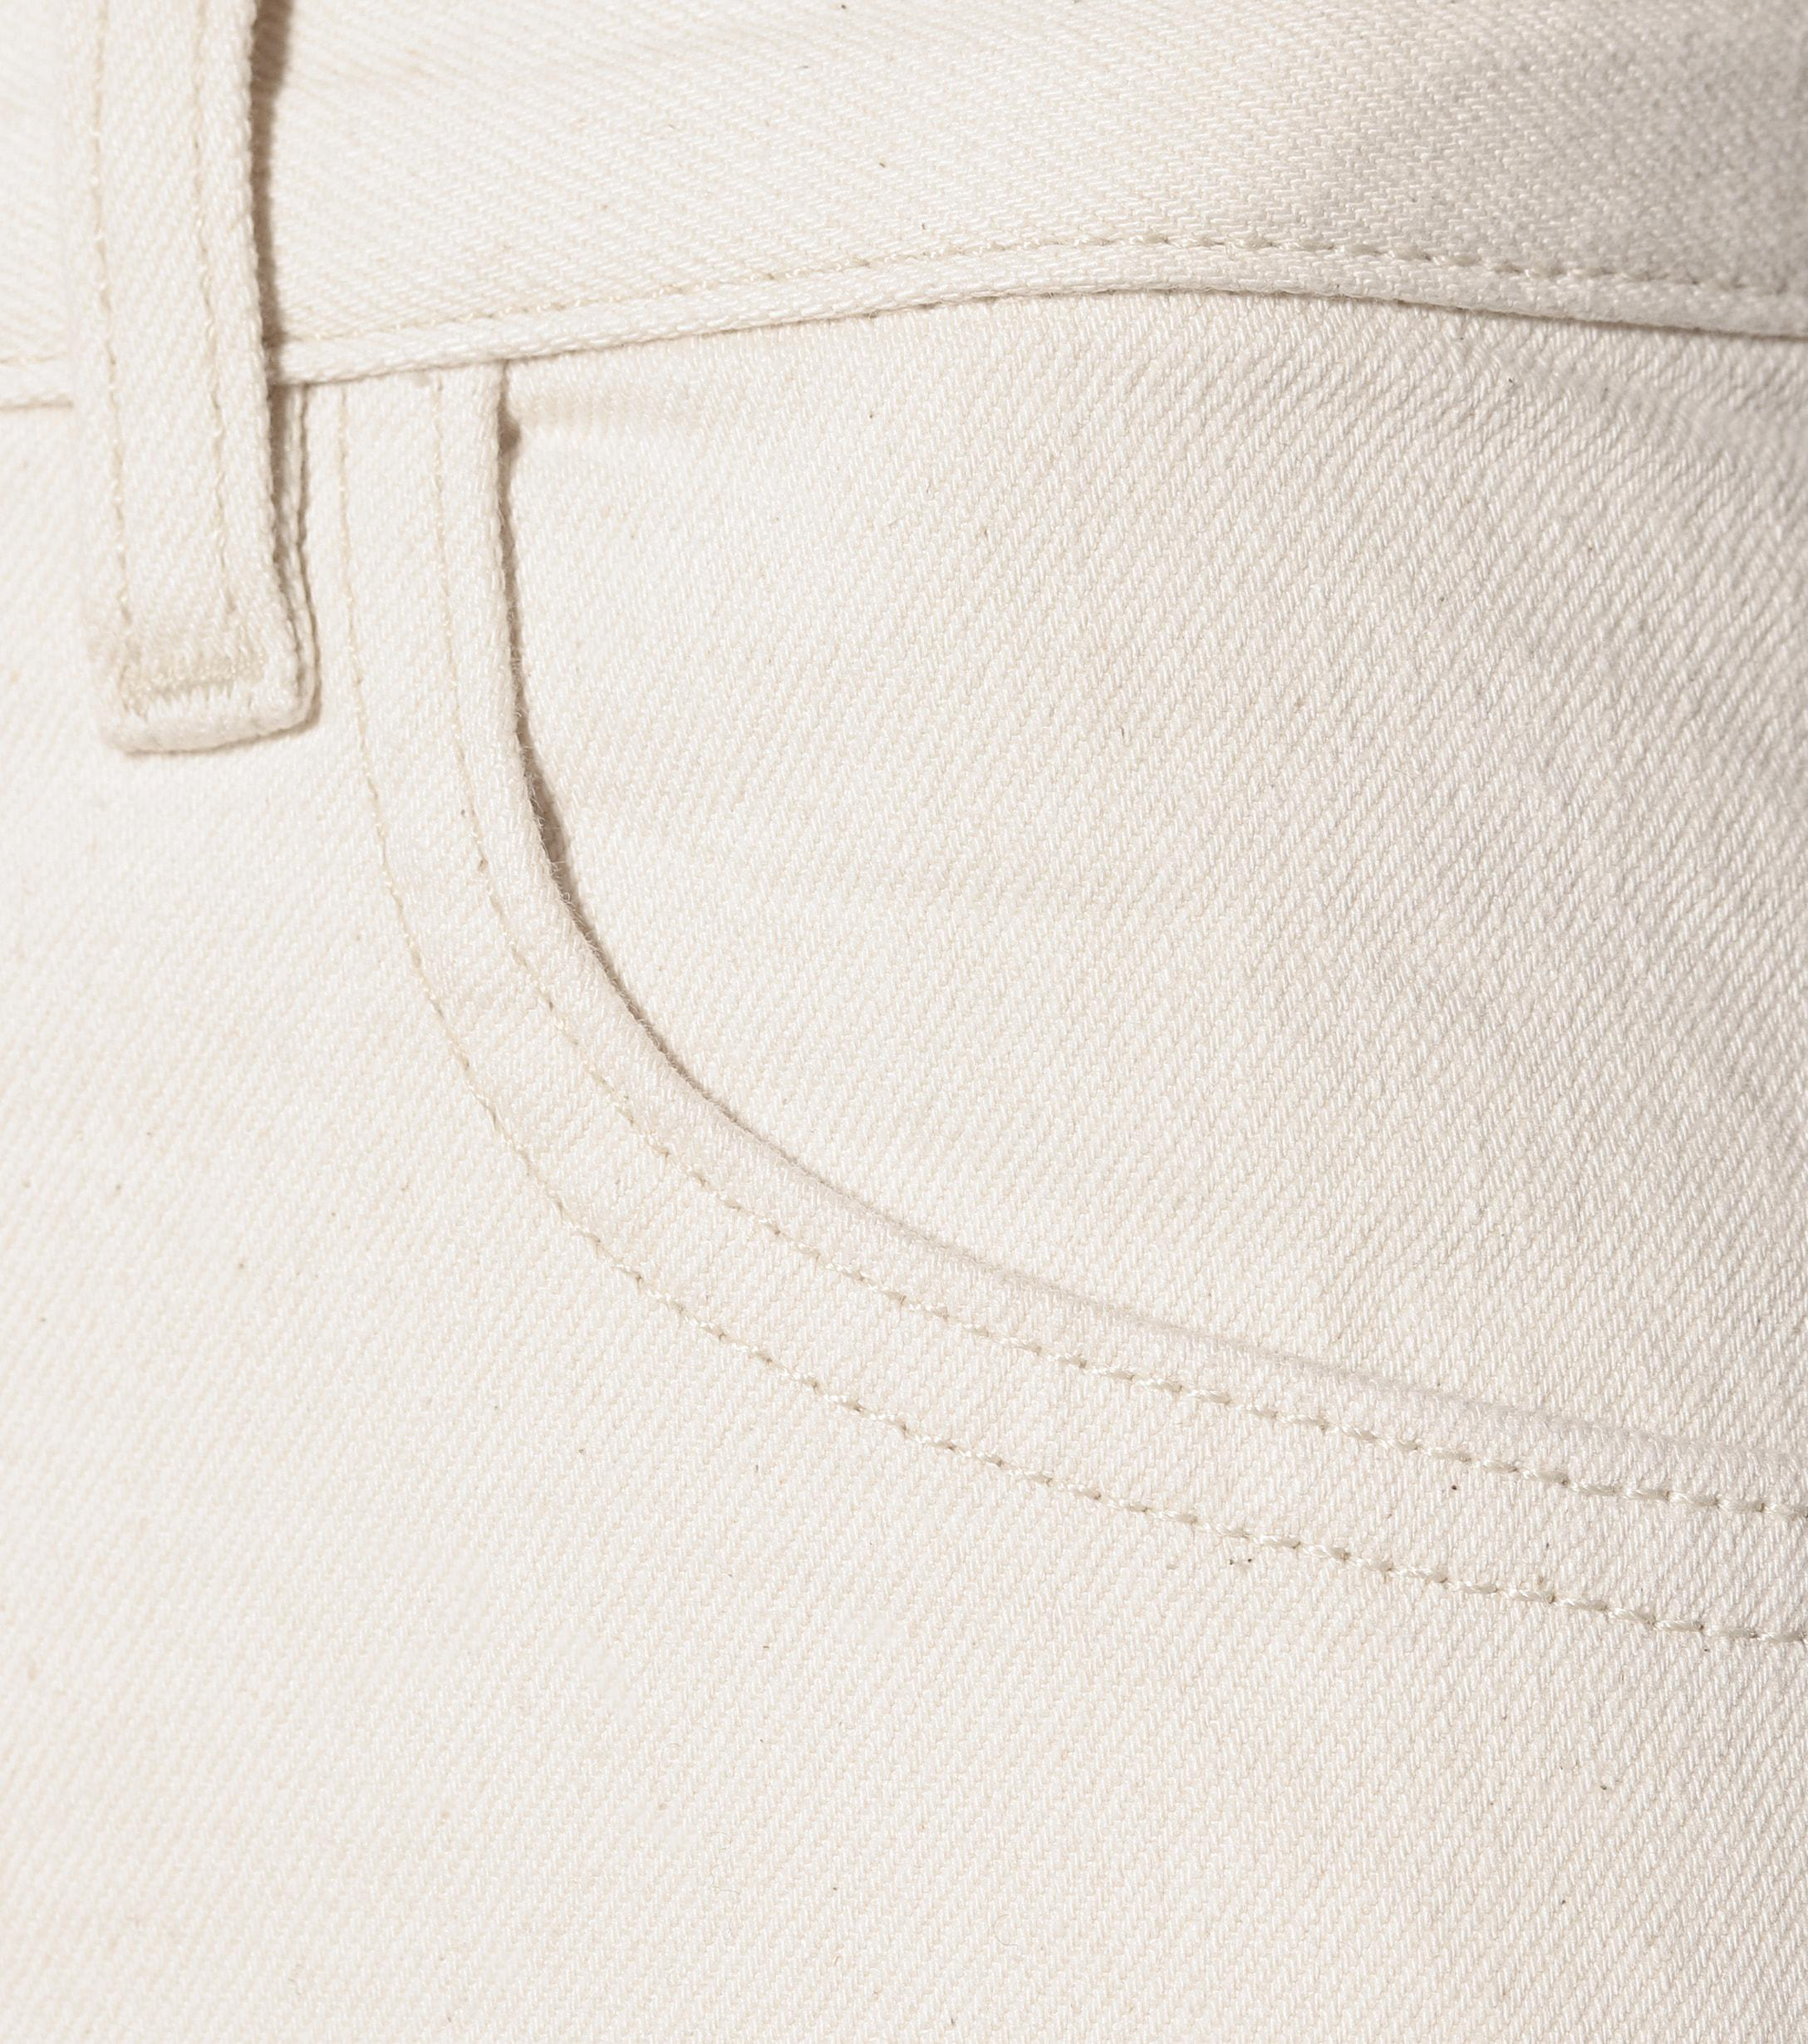 The Row Denim Ashland Cropped Straight-leg Jeans in White